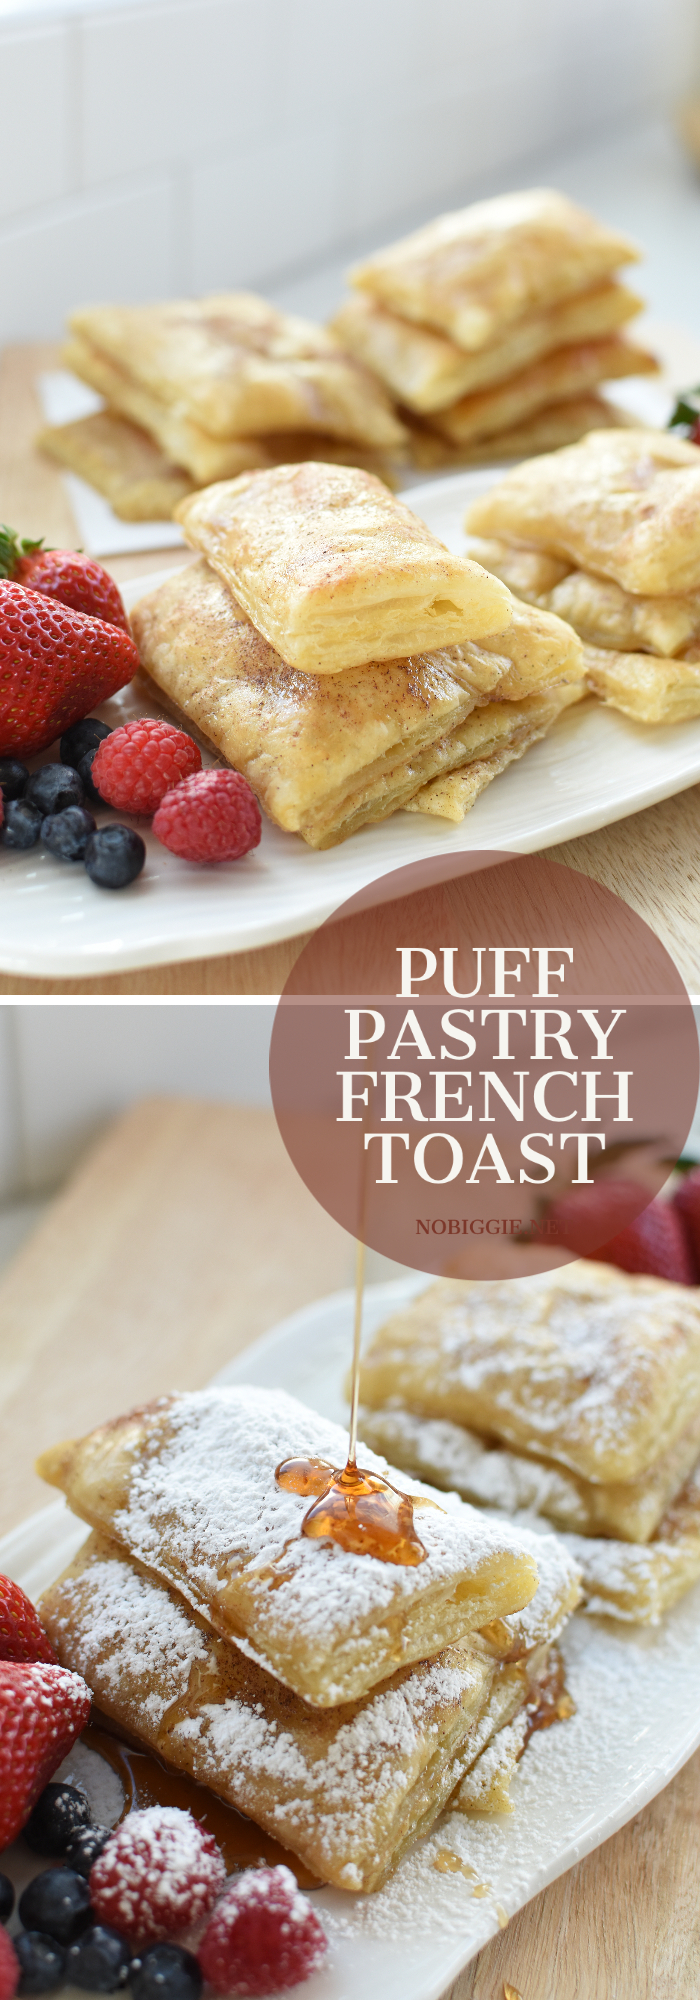 puff pastry french toast | NoBiggie.net